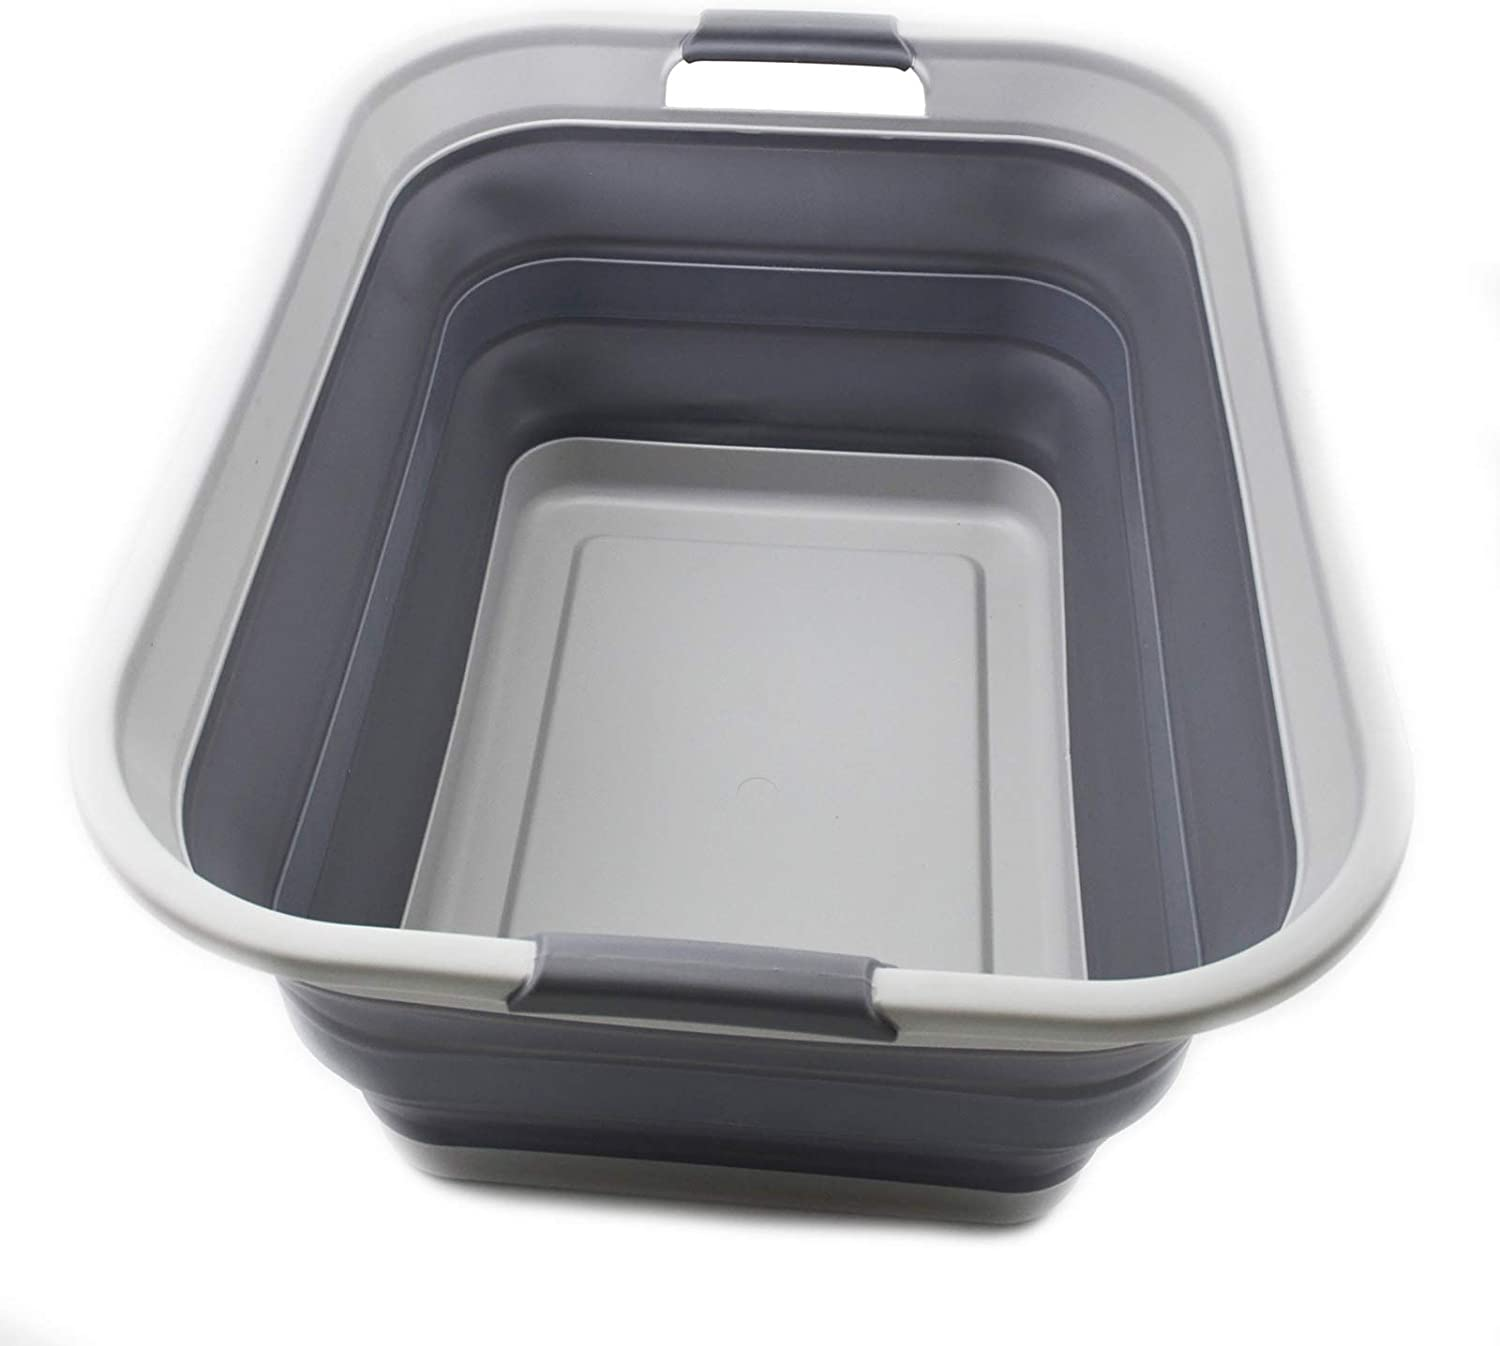 SAMMART Collapsible Plastic Laundry Max 73% OFF Basket - Up Foldable Pop Classic Sto